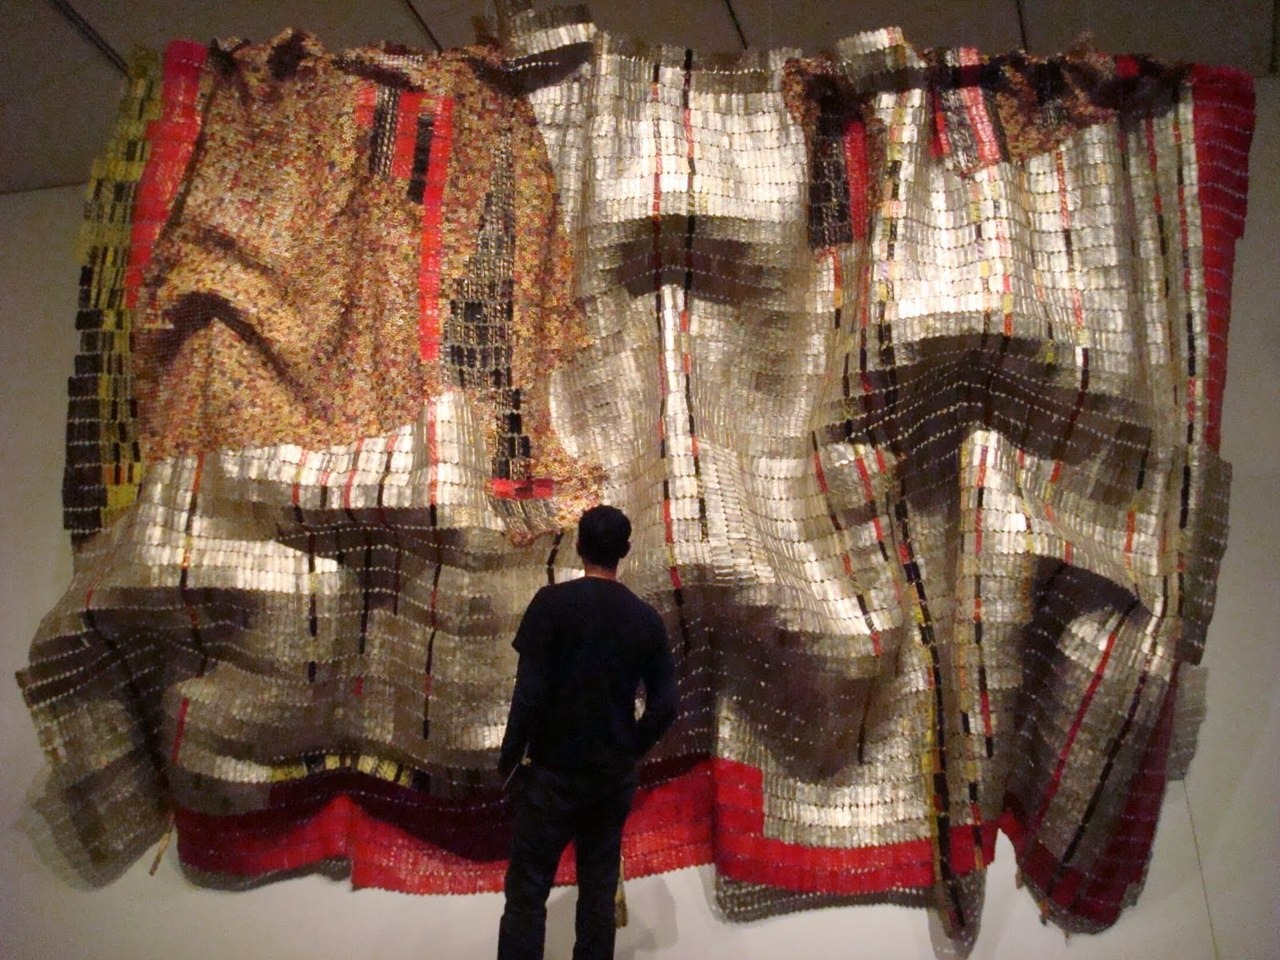 El Anatsui, Embrace, recycled liquor wrappers.